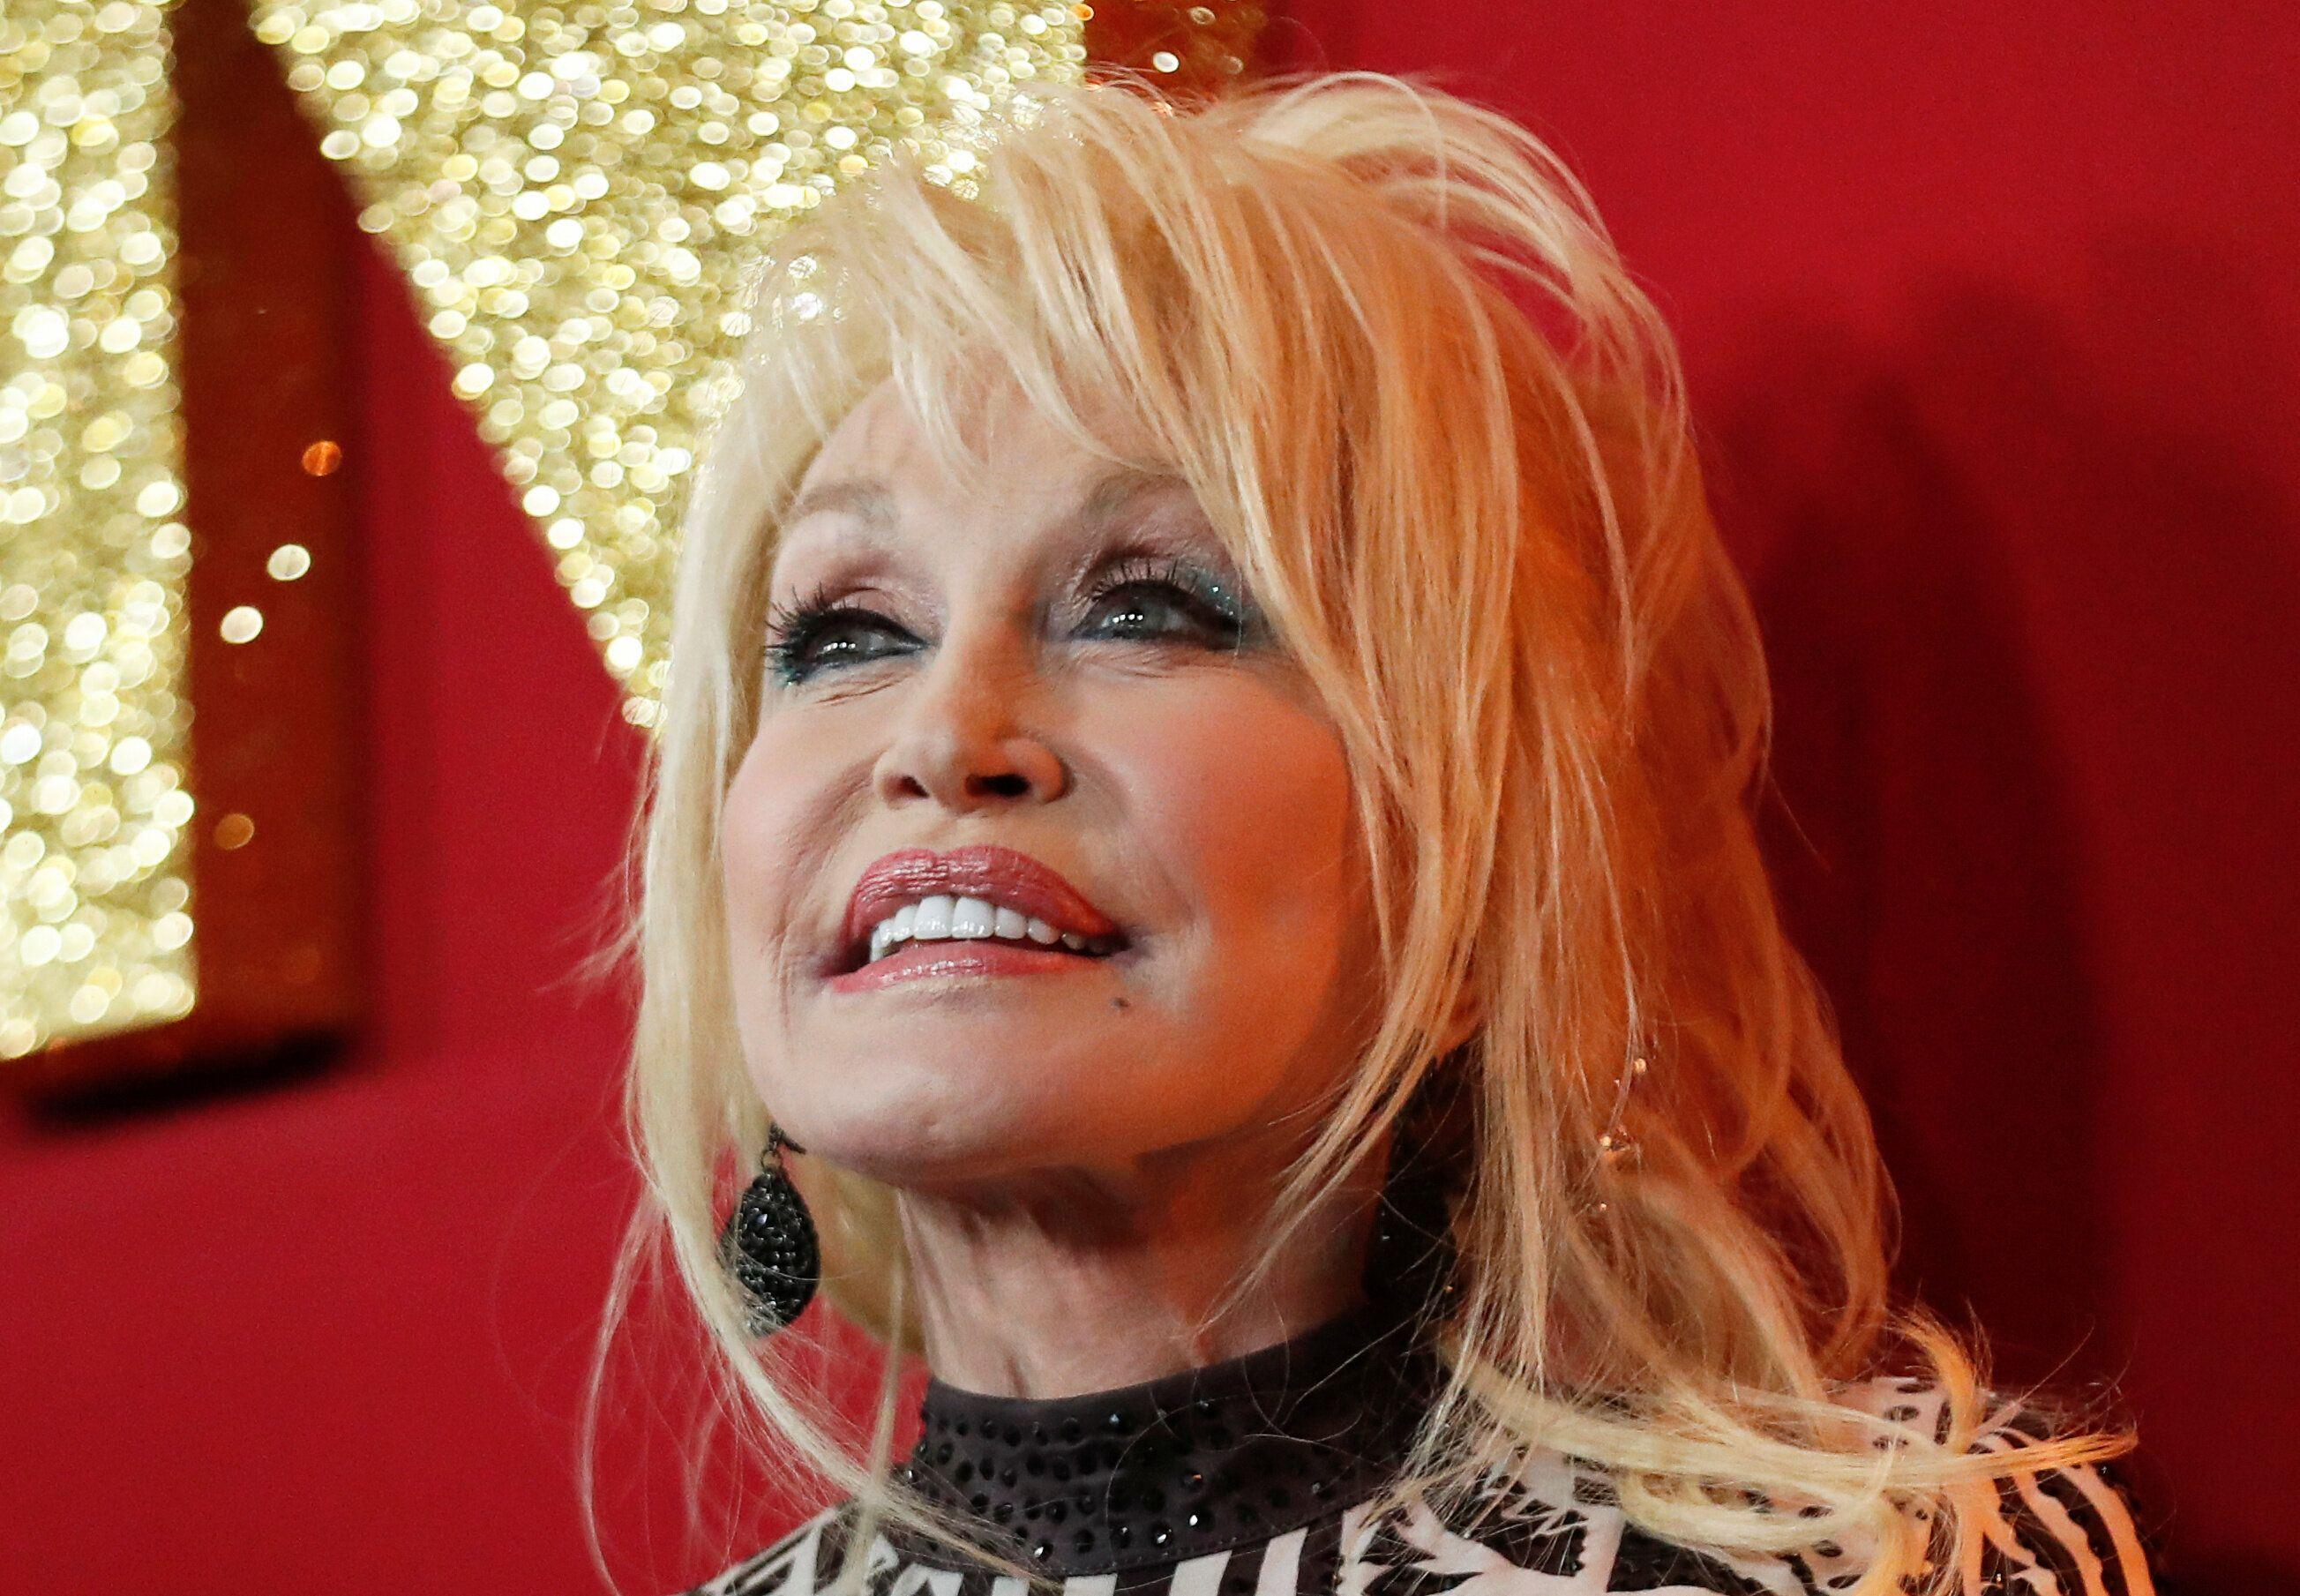 Dolly Parton Avoids Rides At Her Own Theme Park Dollywood Because They Ll Mess Up Her Wigs